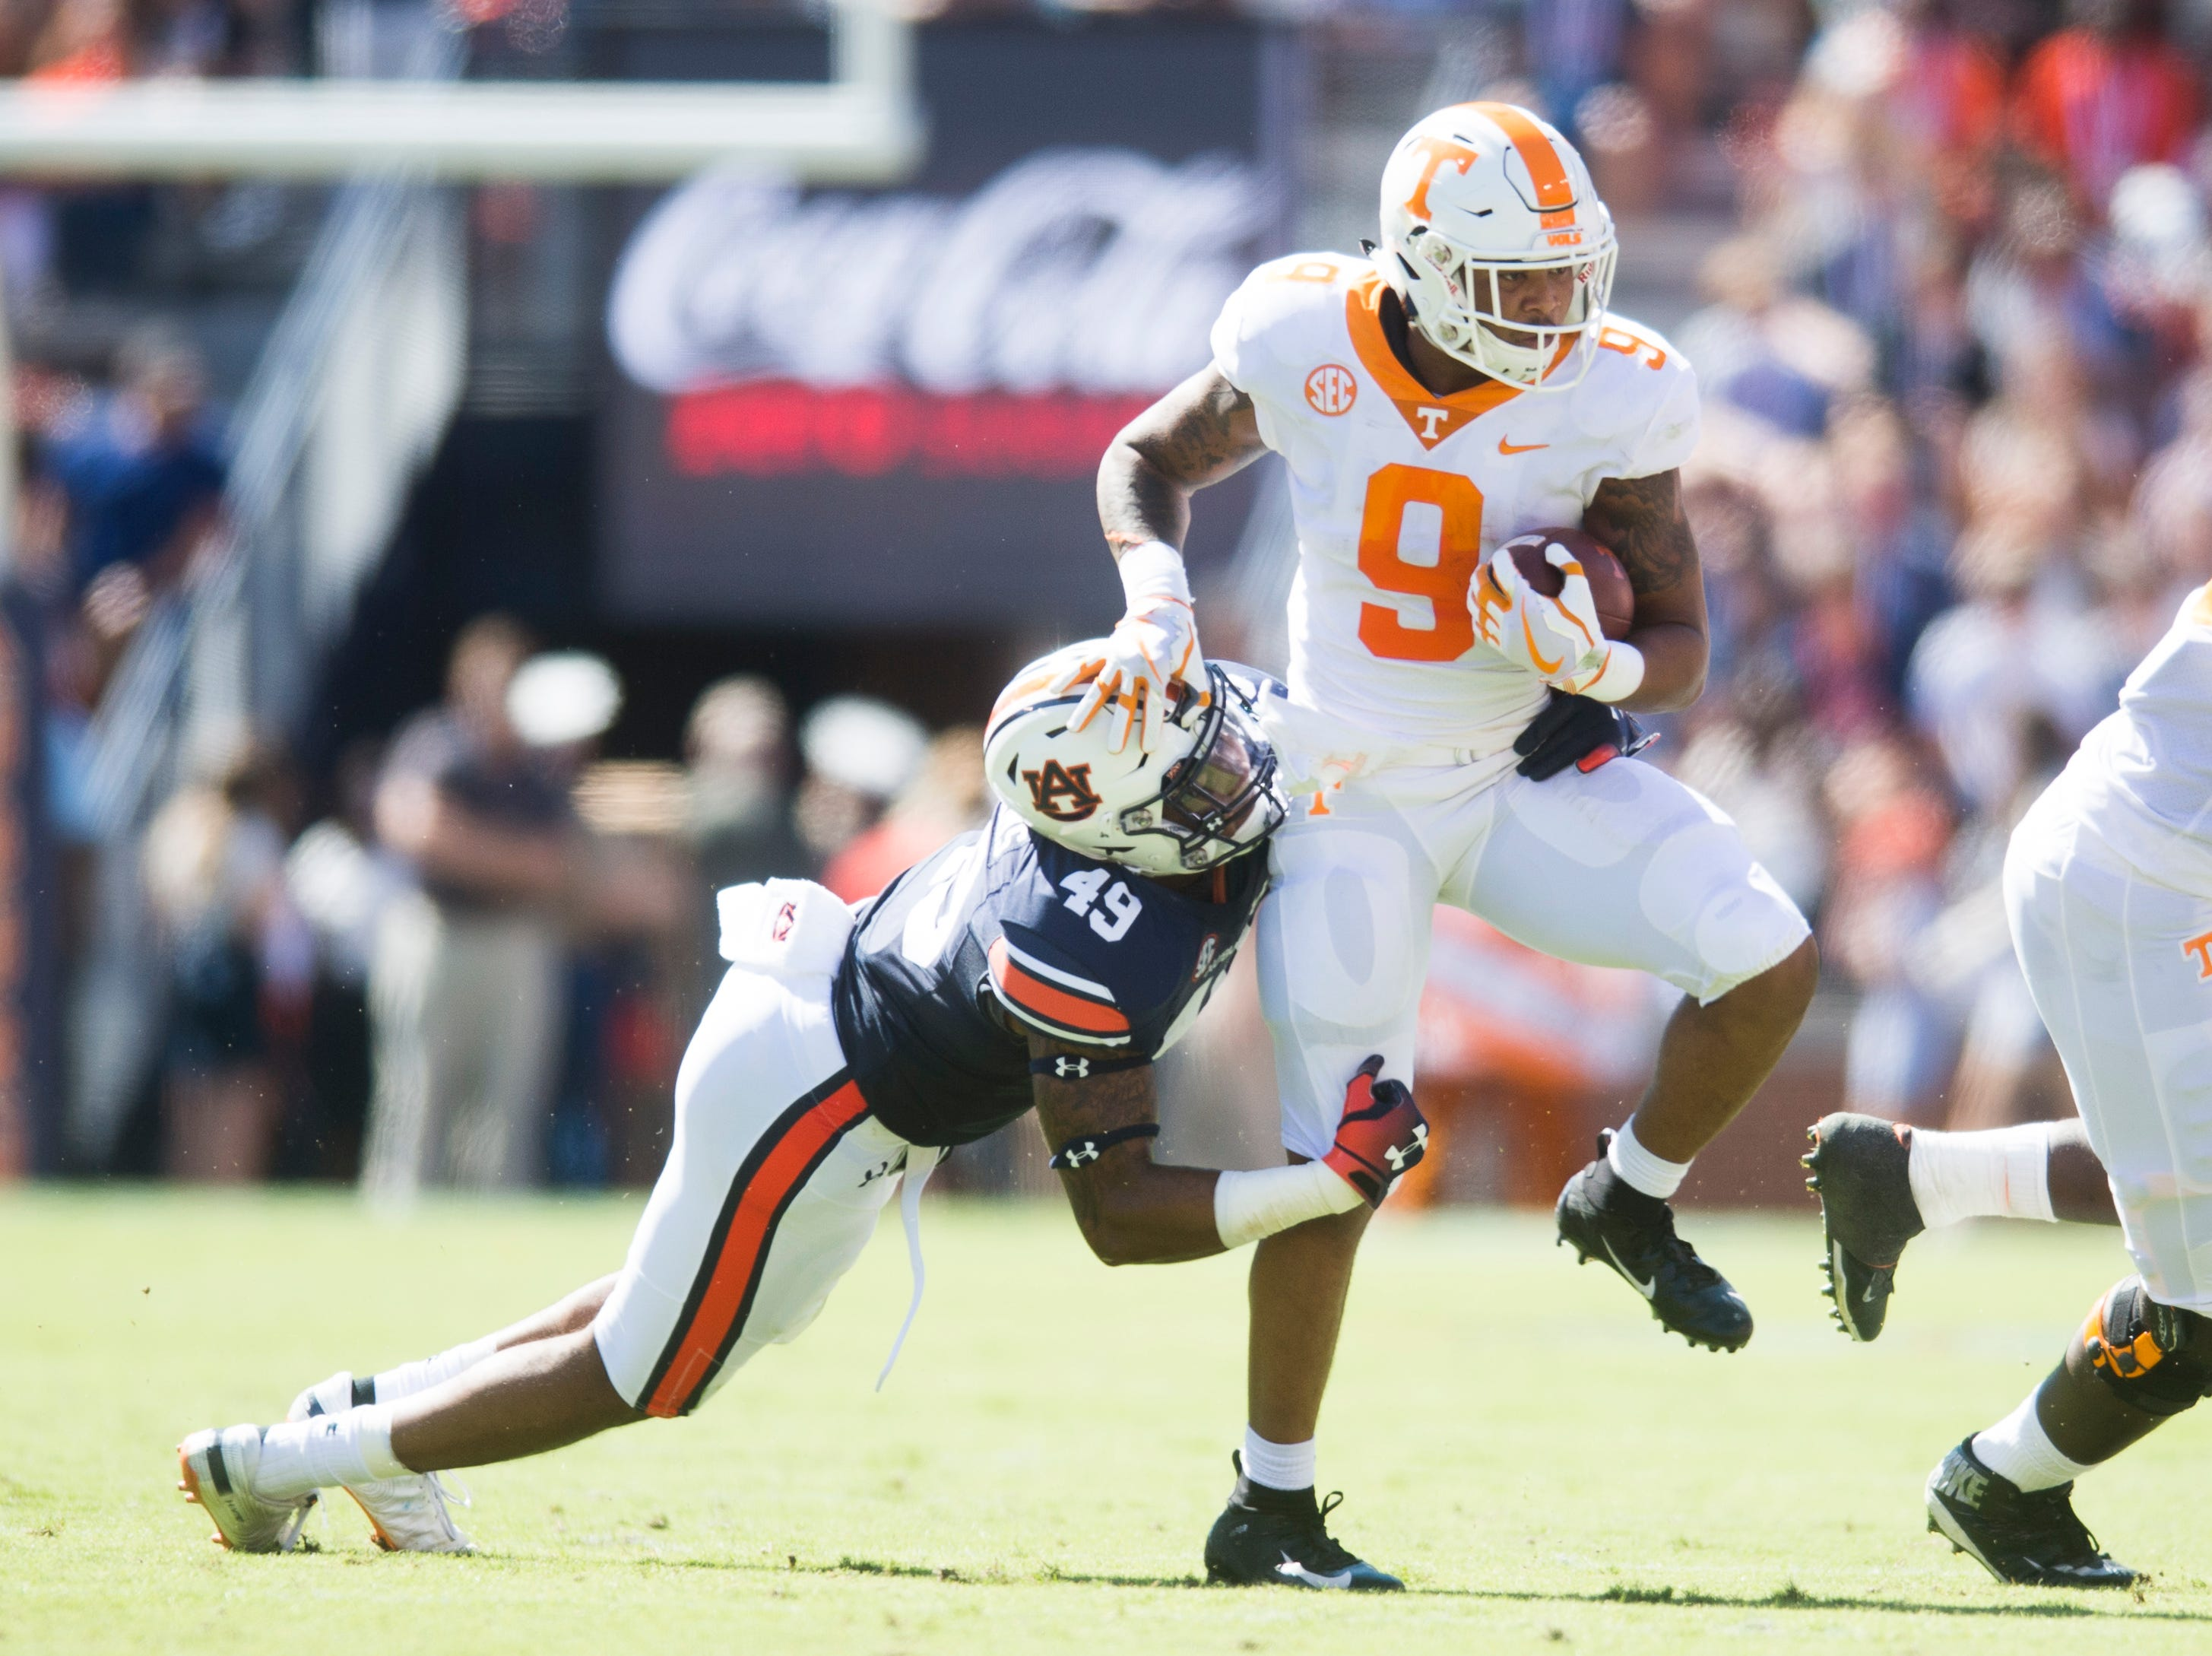 Tennessee running back Tim Jordan (9) runs with the ball as Auburn linebacker Darrell Williams (49) tries to stop him during a game between Tennessee and Auburn at Jordan-Hare Stadium in Auburn, Alabama on Saturday, October 13, 2018.